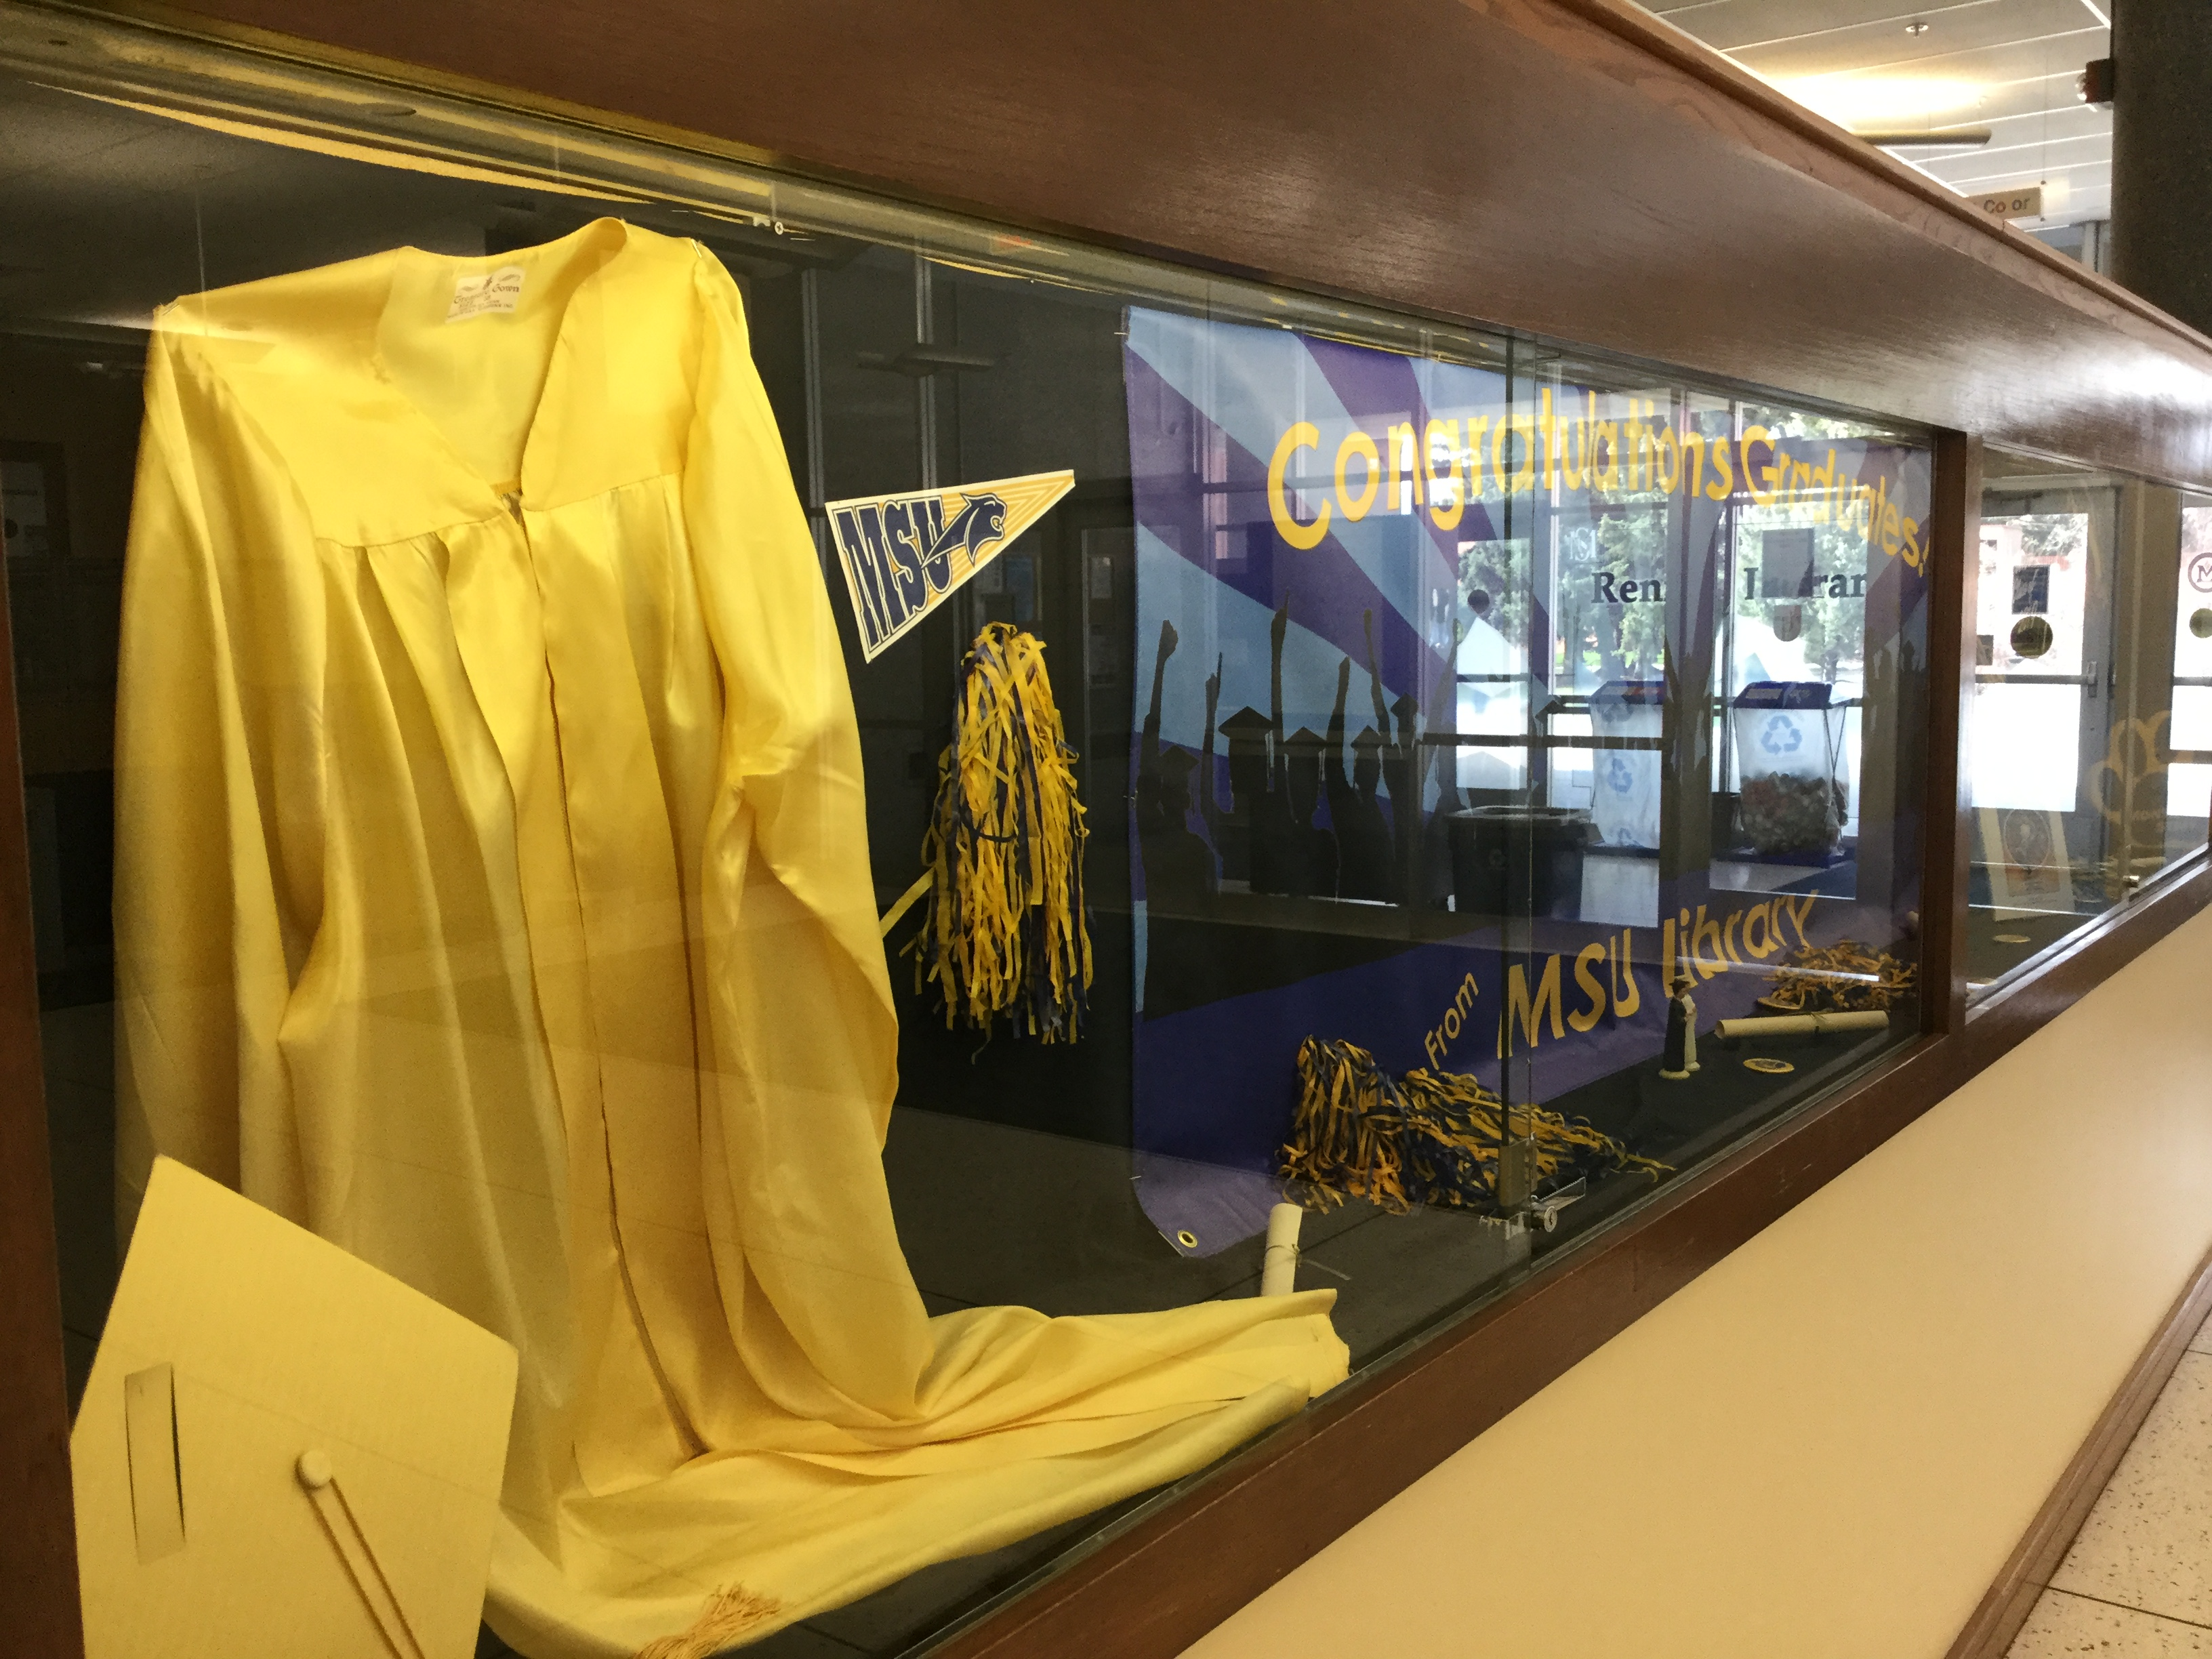 Graduating class of 2019 display case angled from left